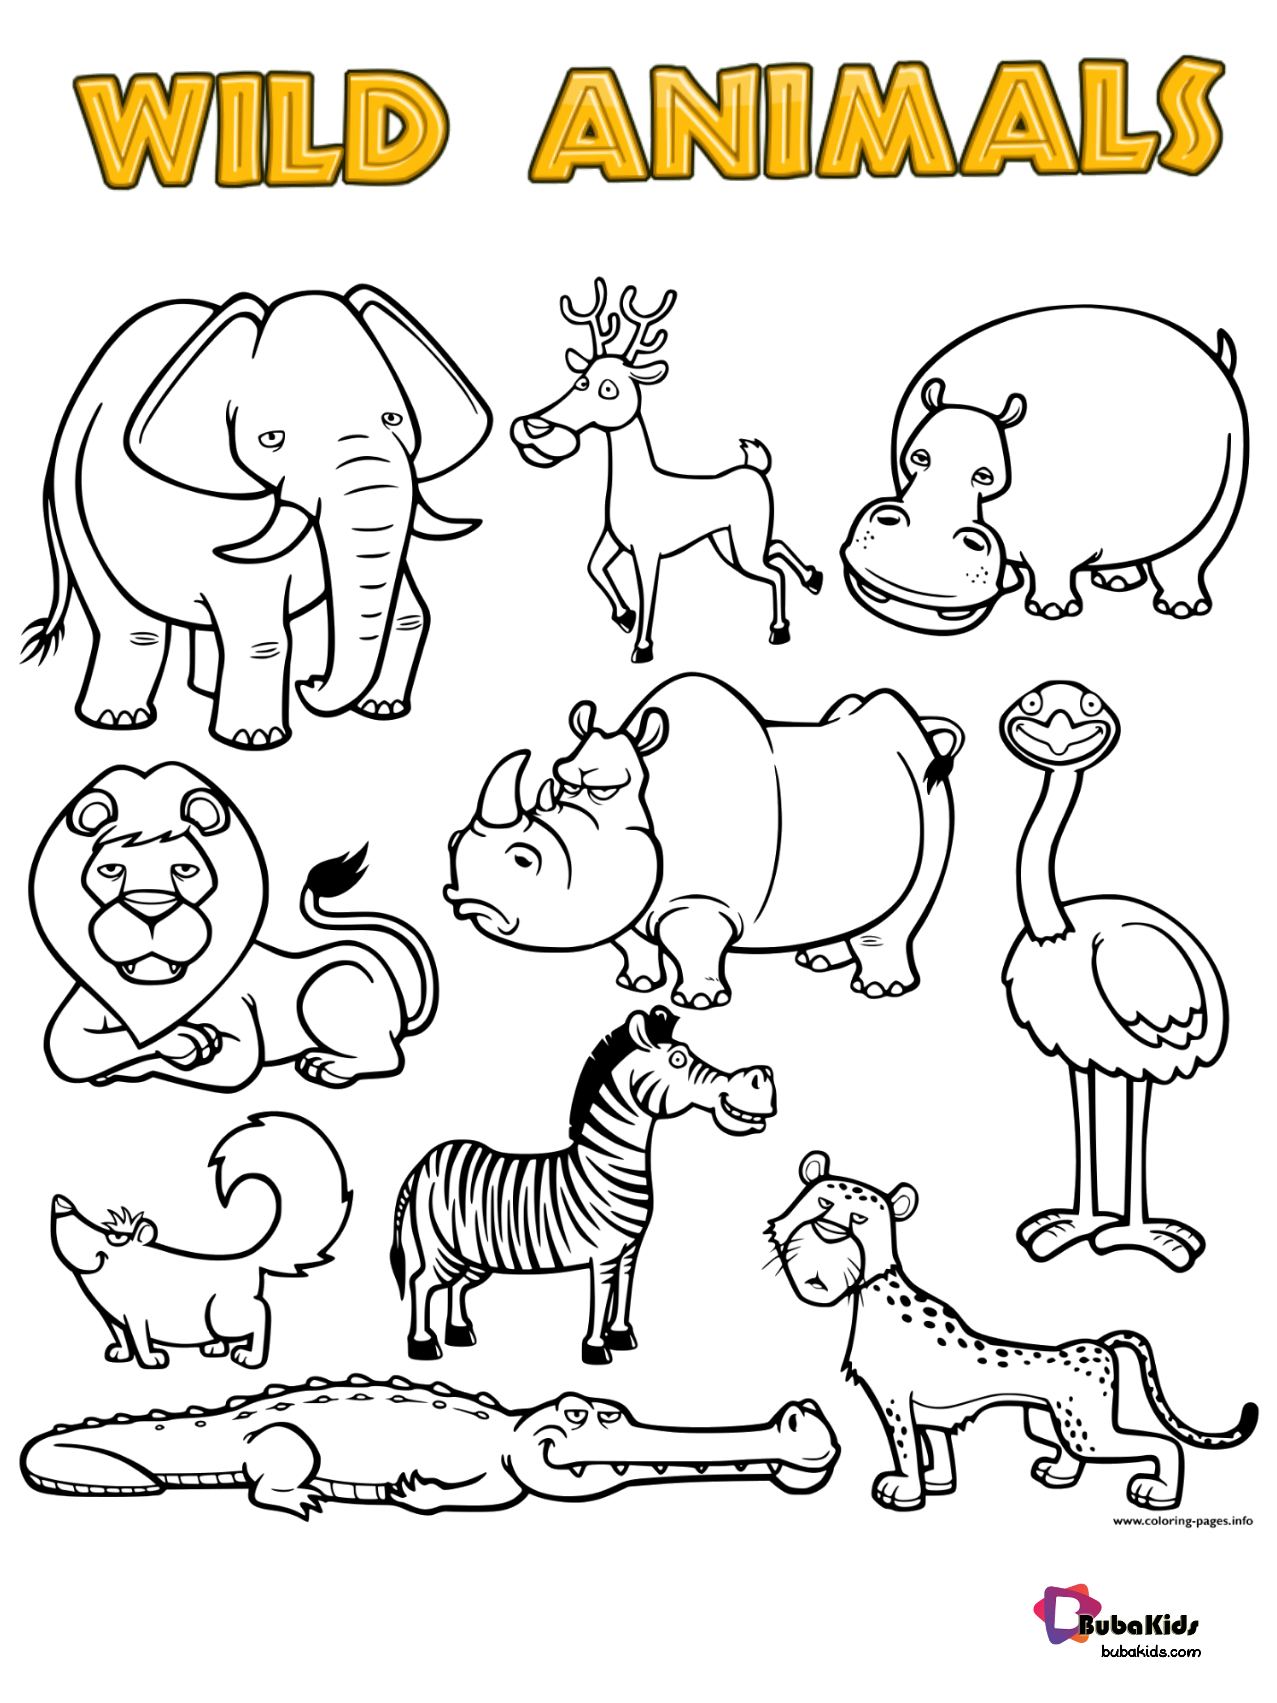 Free Download Wild Animals Printable Coloring Page Collection Of Animal Coloring Pages For Teenag Wild Animals Printable Coloring Pages Animal Coloring Pages